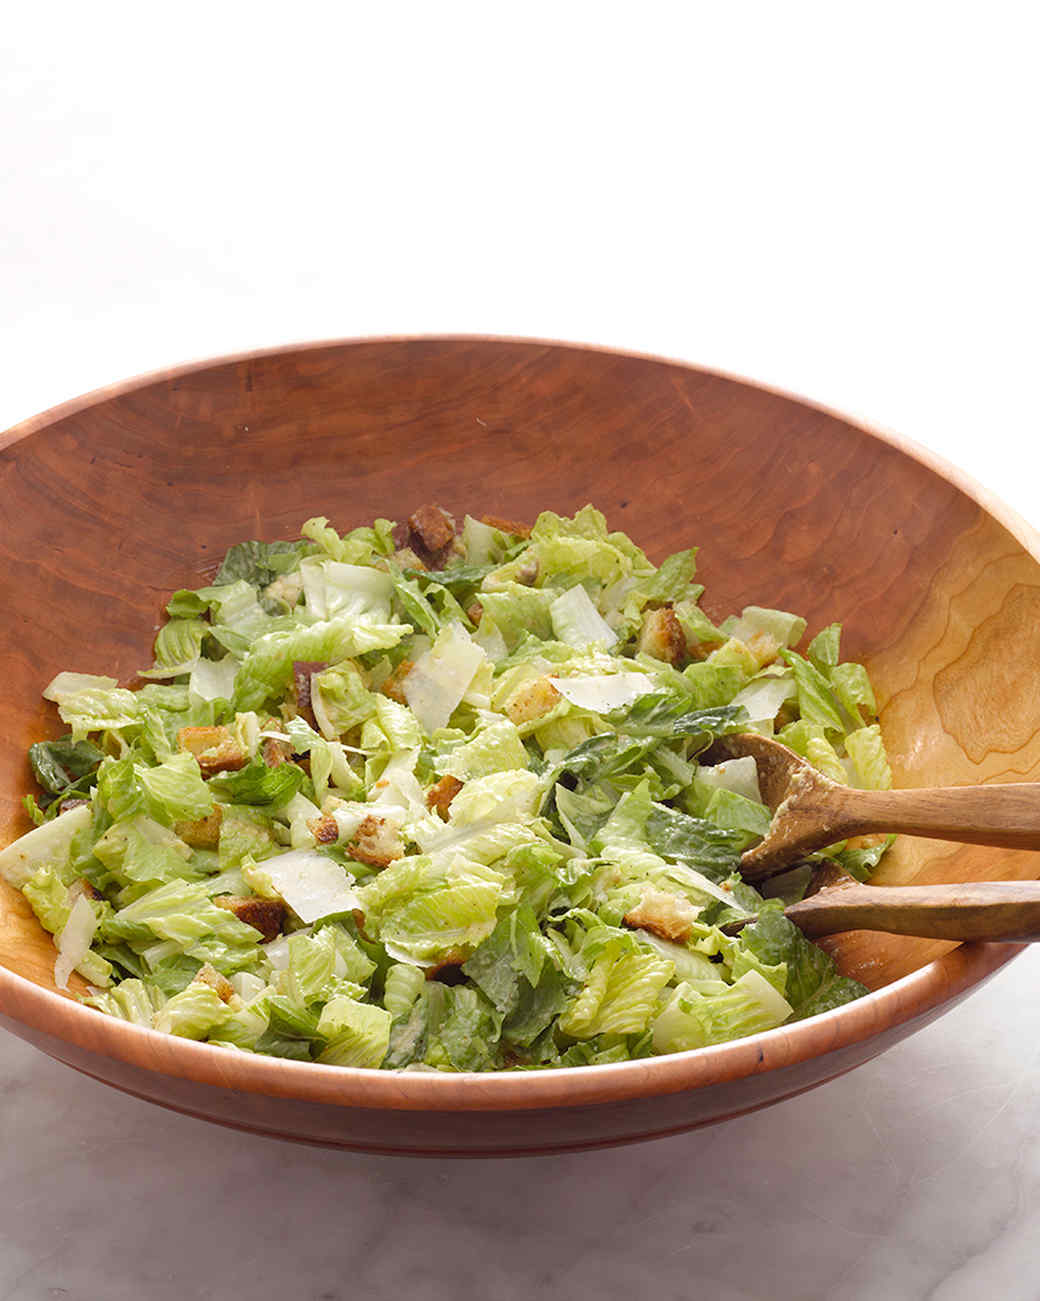 martha-stewart-cooking-school-caesar-salad-am-0009-d110633-20130923.jpg